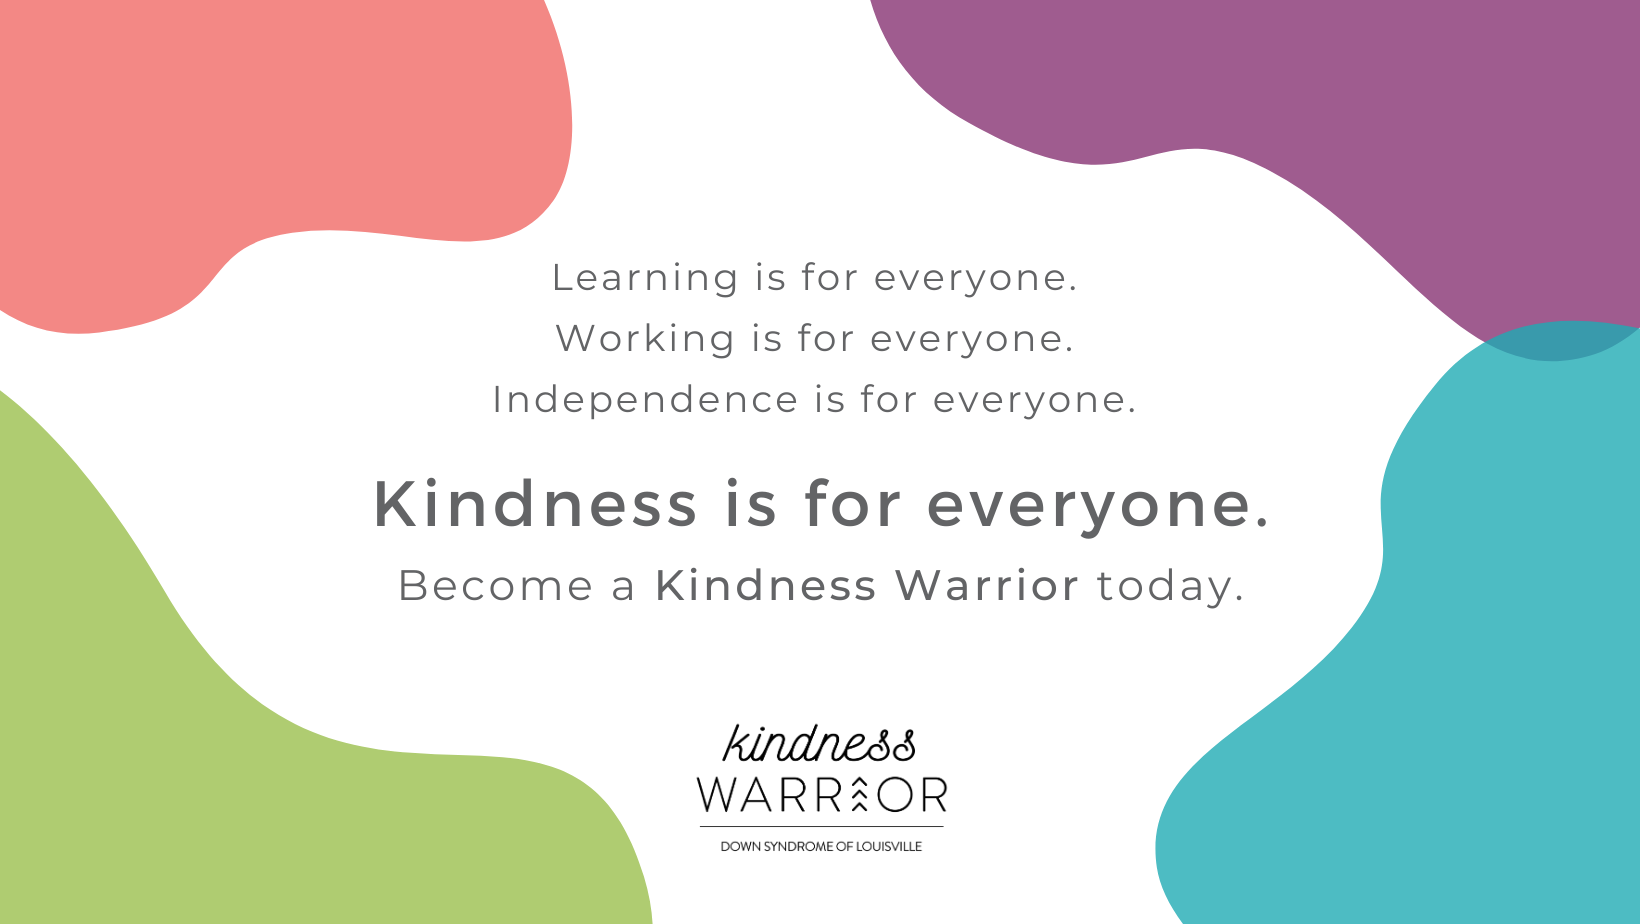 Want to be a Kindness Warrior?